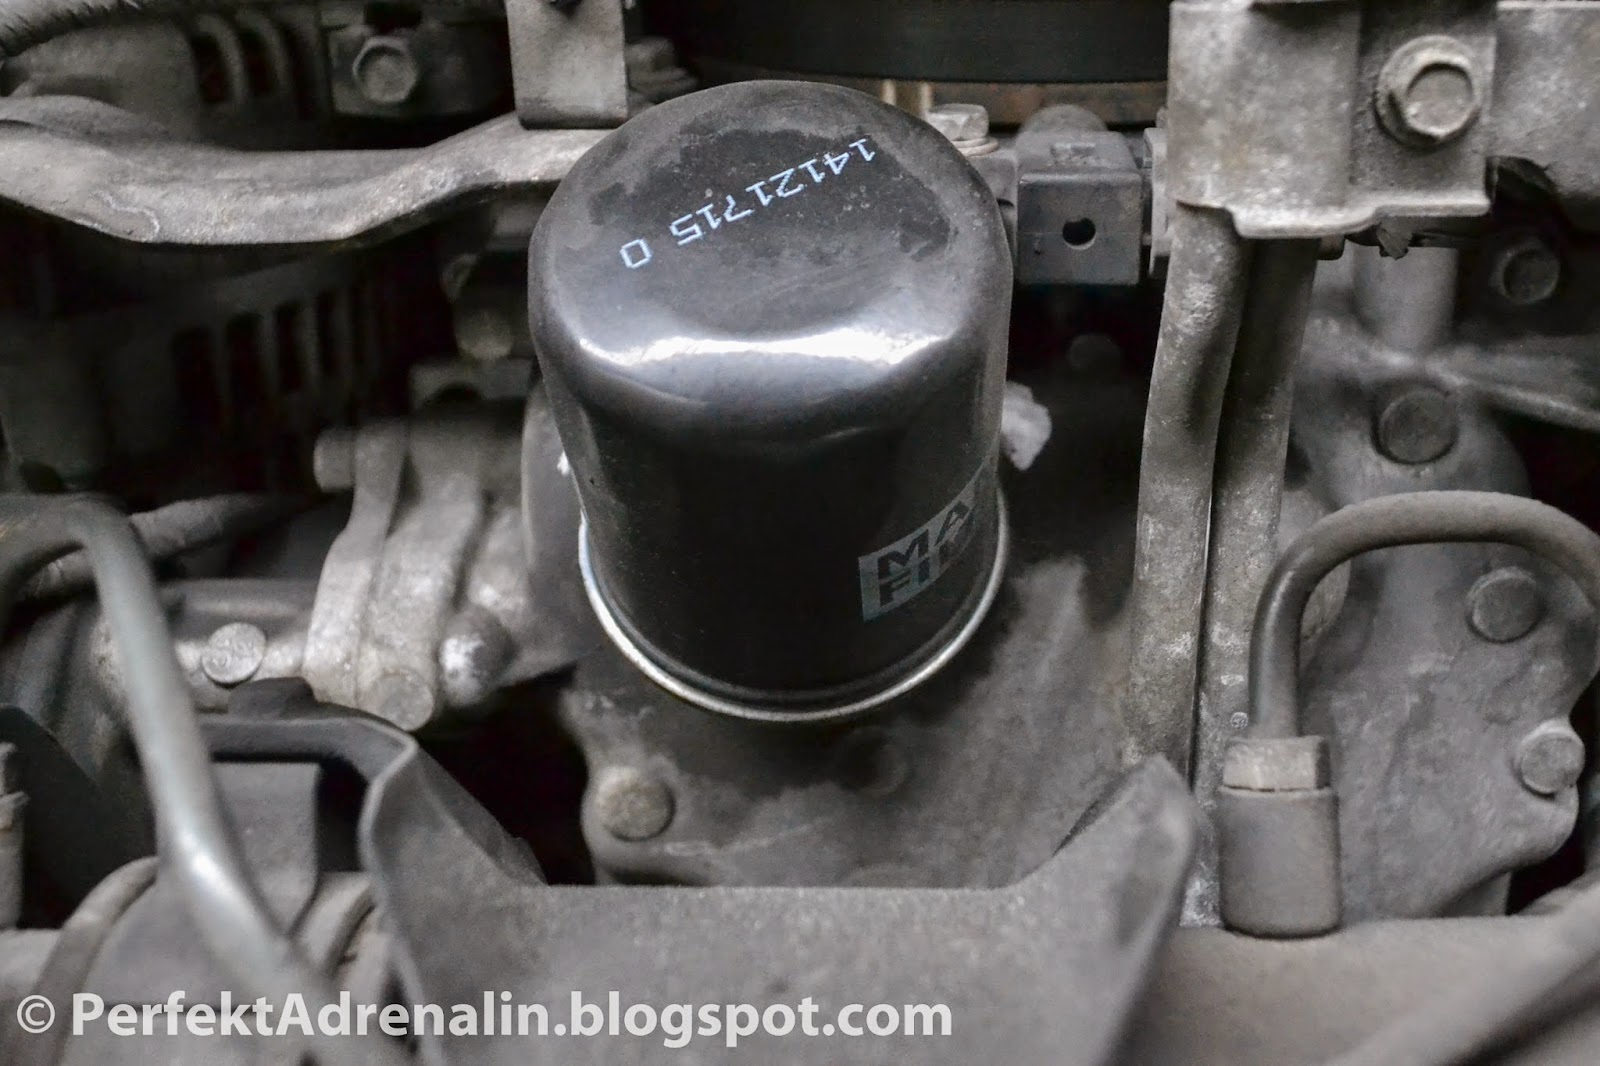 Perfektadrenalin diy infiniti qx4 nissan pathfinder oil change locate oil filter view picture below for reference vanachro Gallery